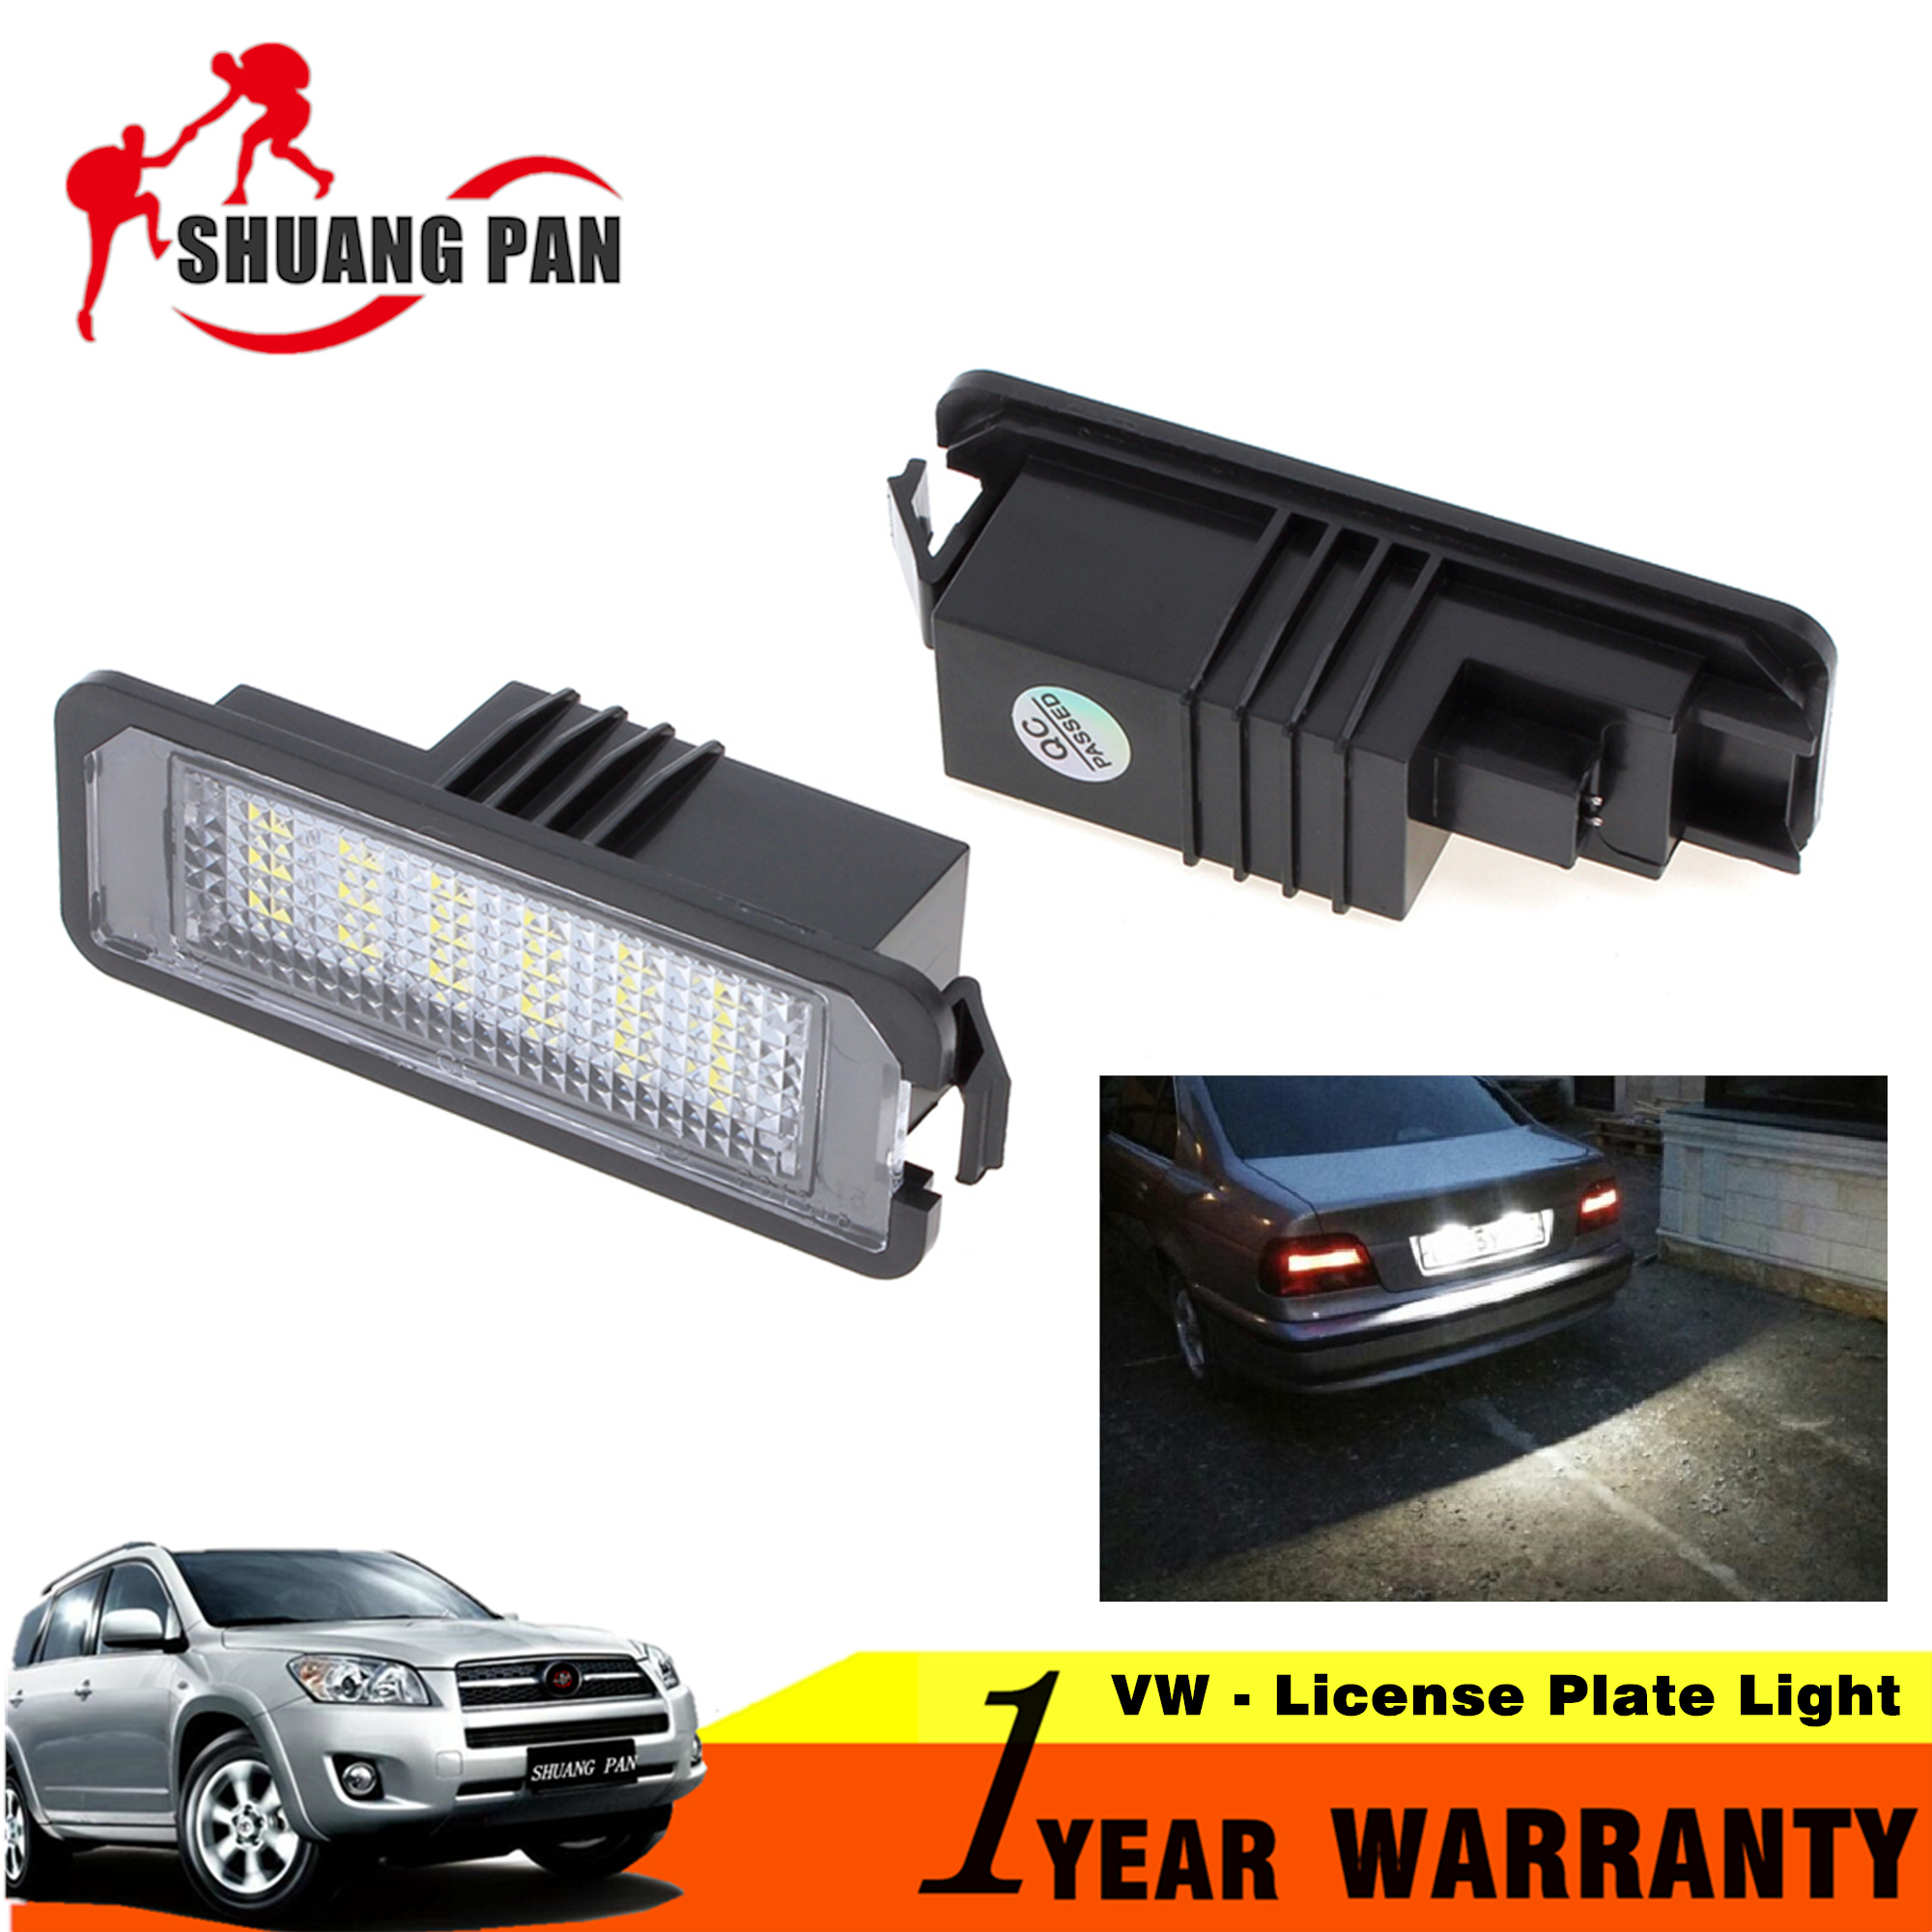 2pcs 12V Car led License Plate Light for VW Golf GTI 4 5 6 CC Beetle Scirocco  Beetle/ for Porsche  Cayman Boxster 3528SMD